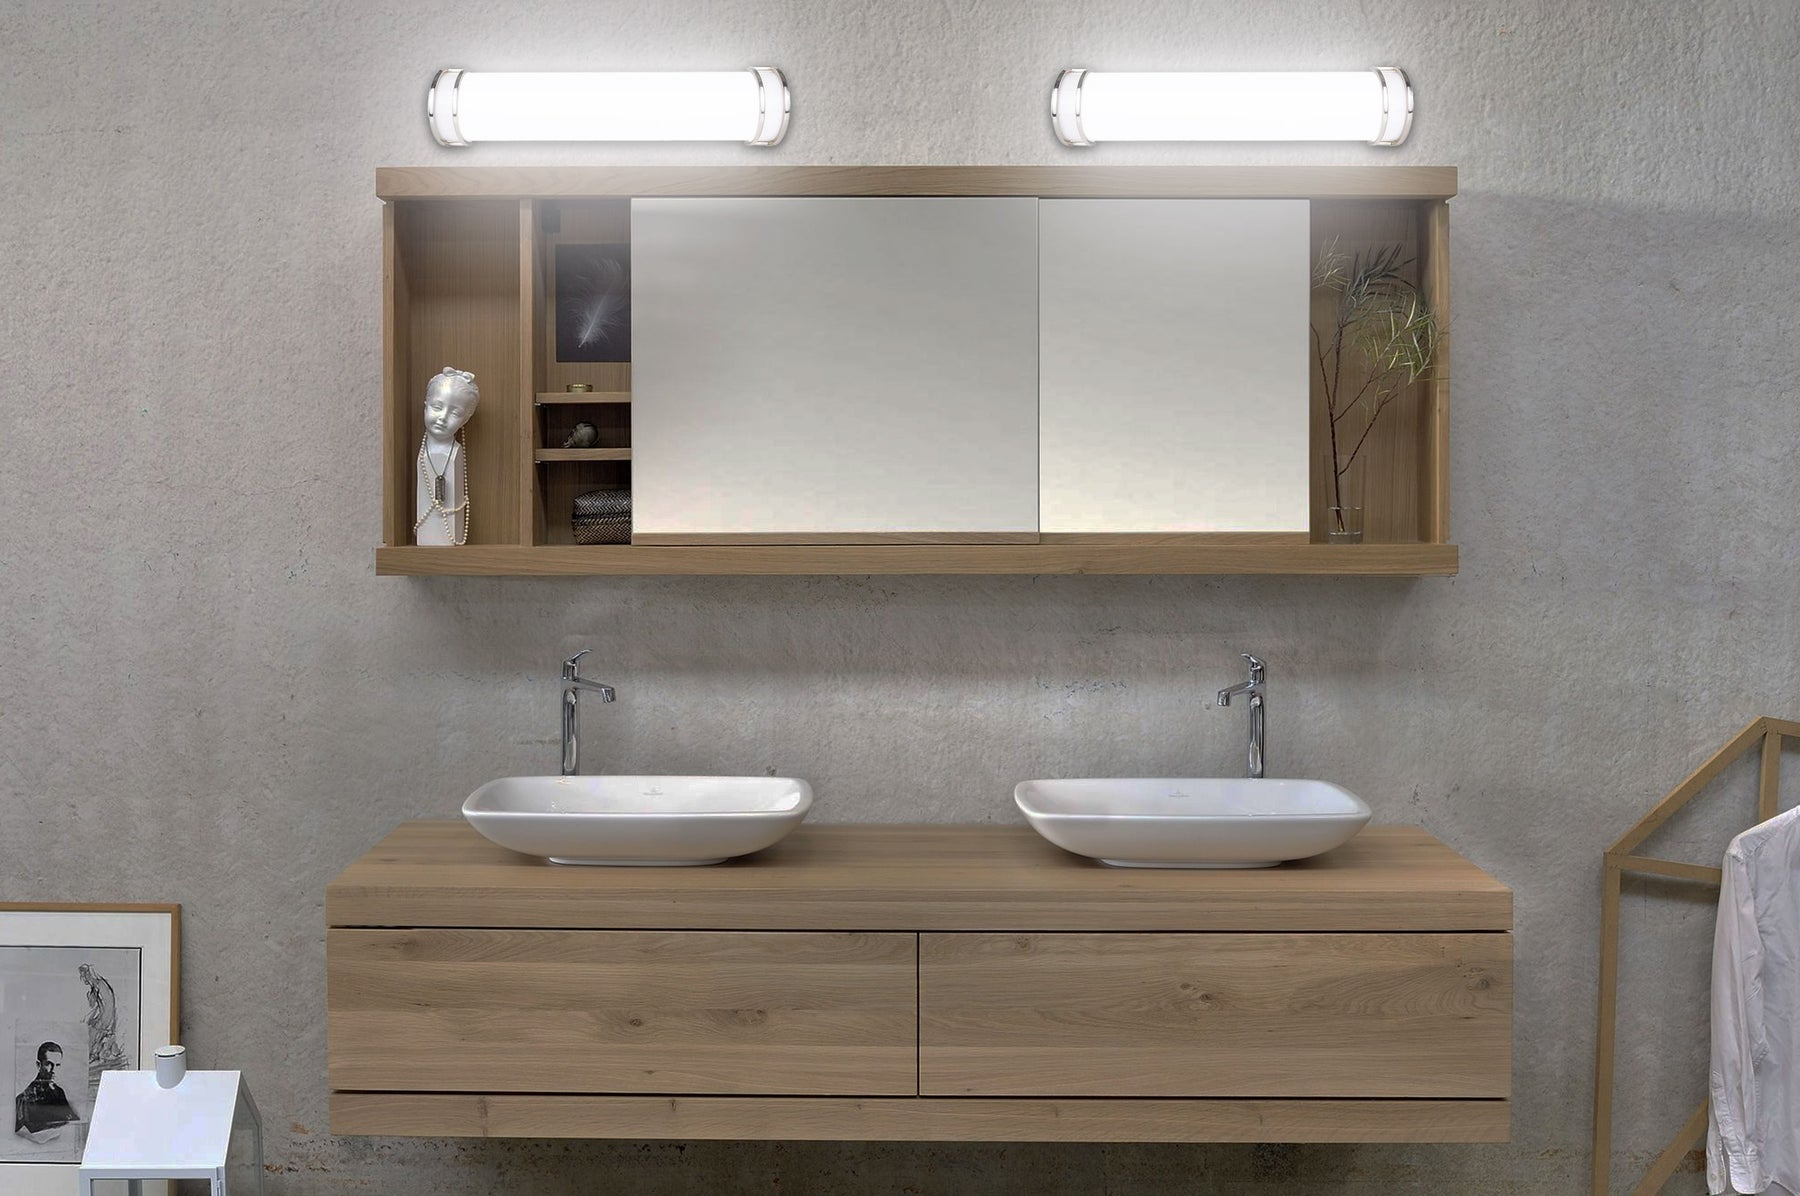 Why LED Vanity light bars are best suited for Washroom?